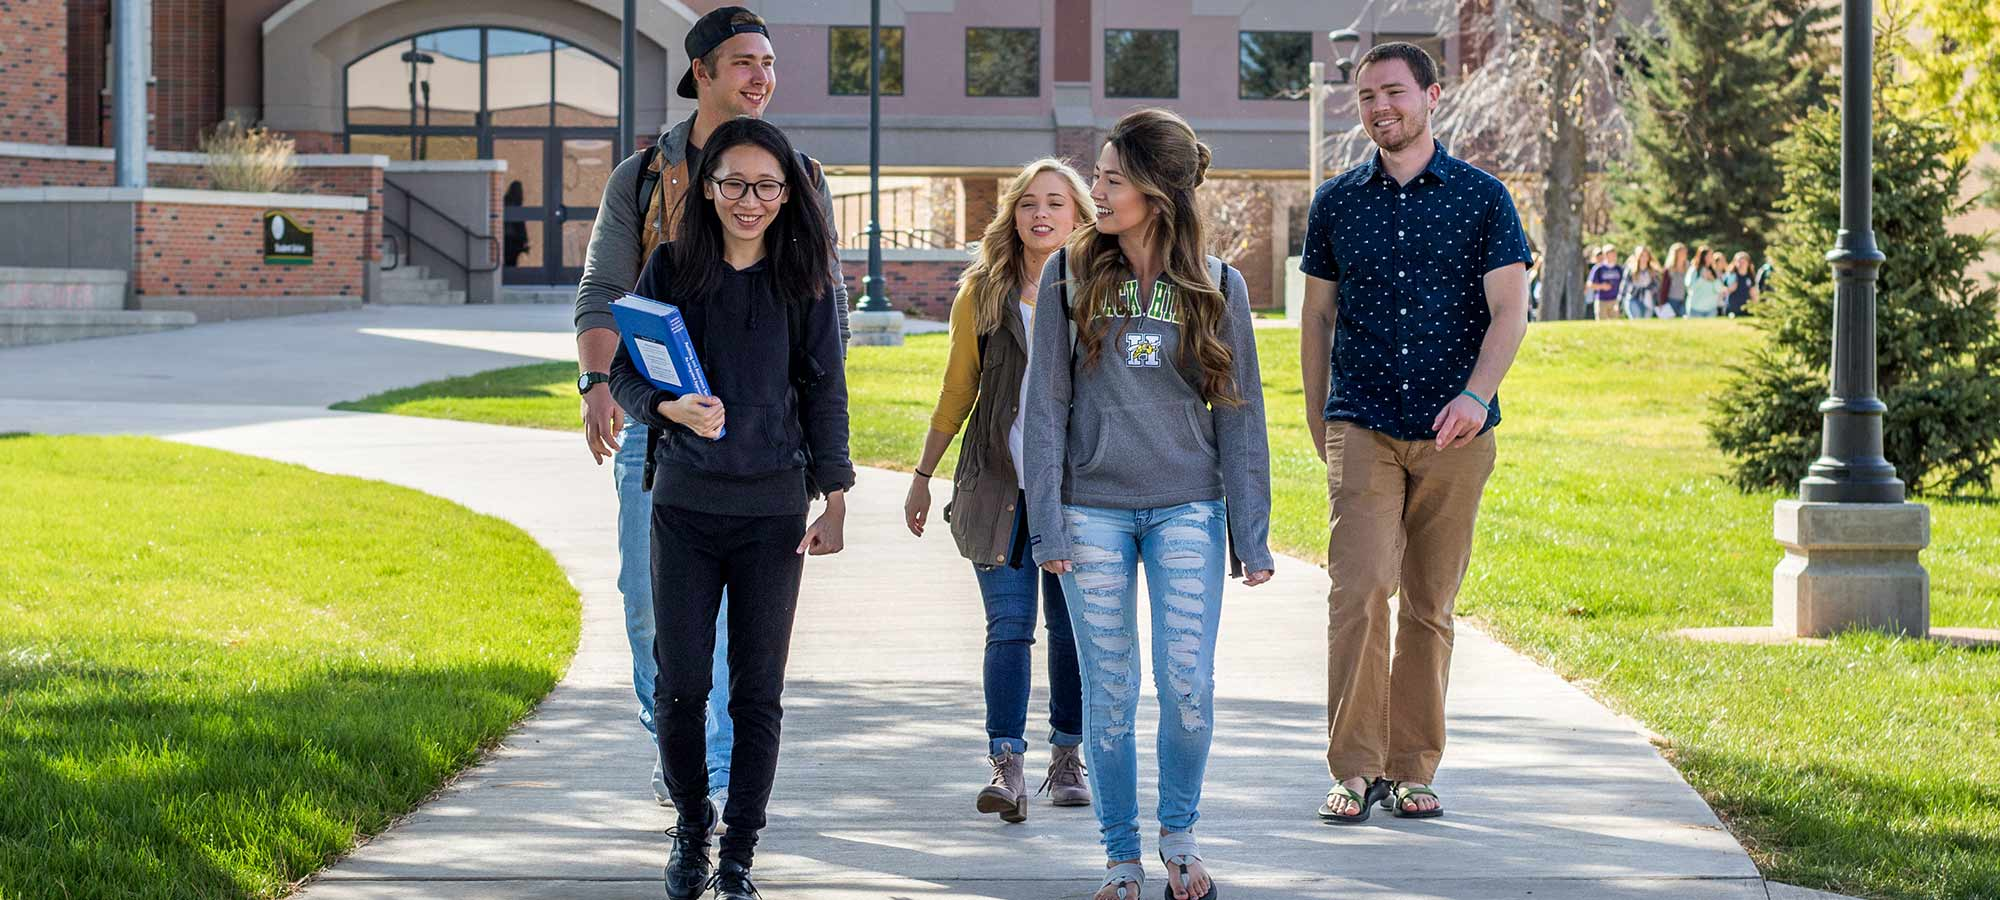 Attend an Open House at BHSU in Spearfish.